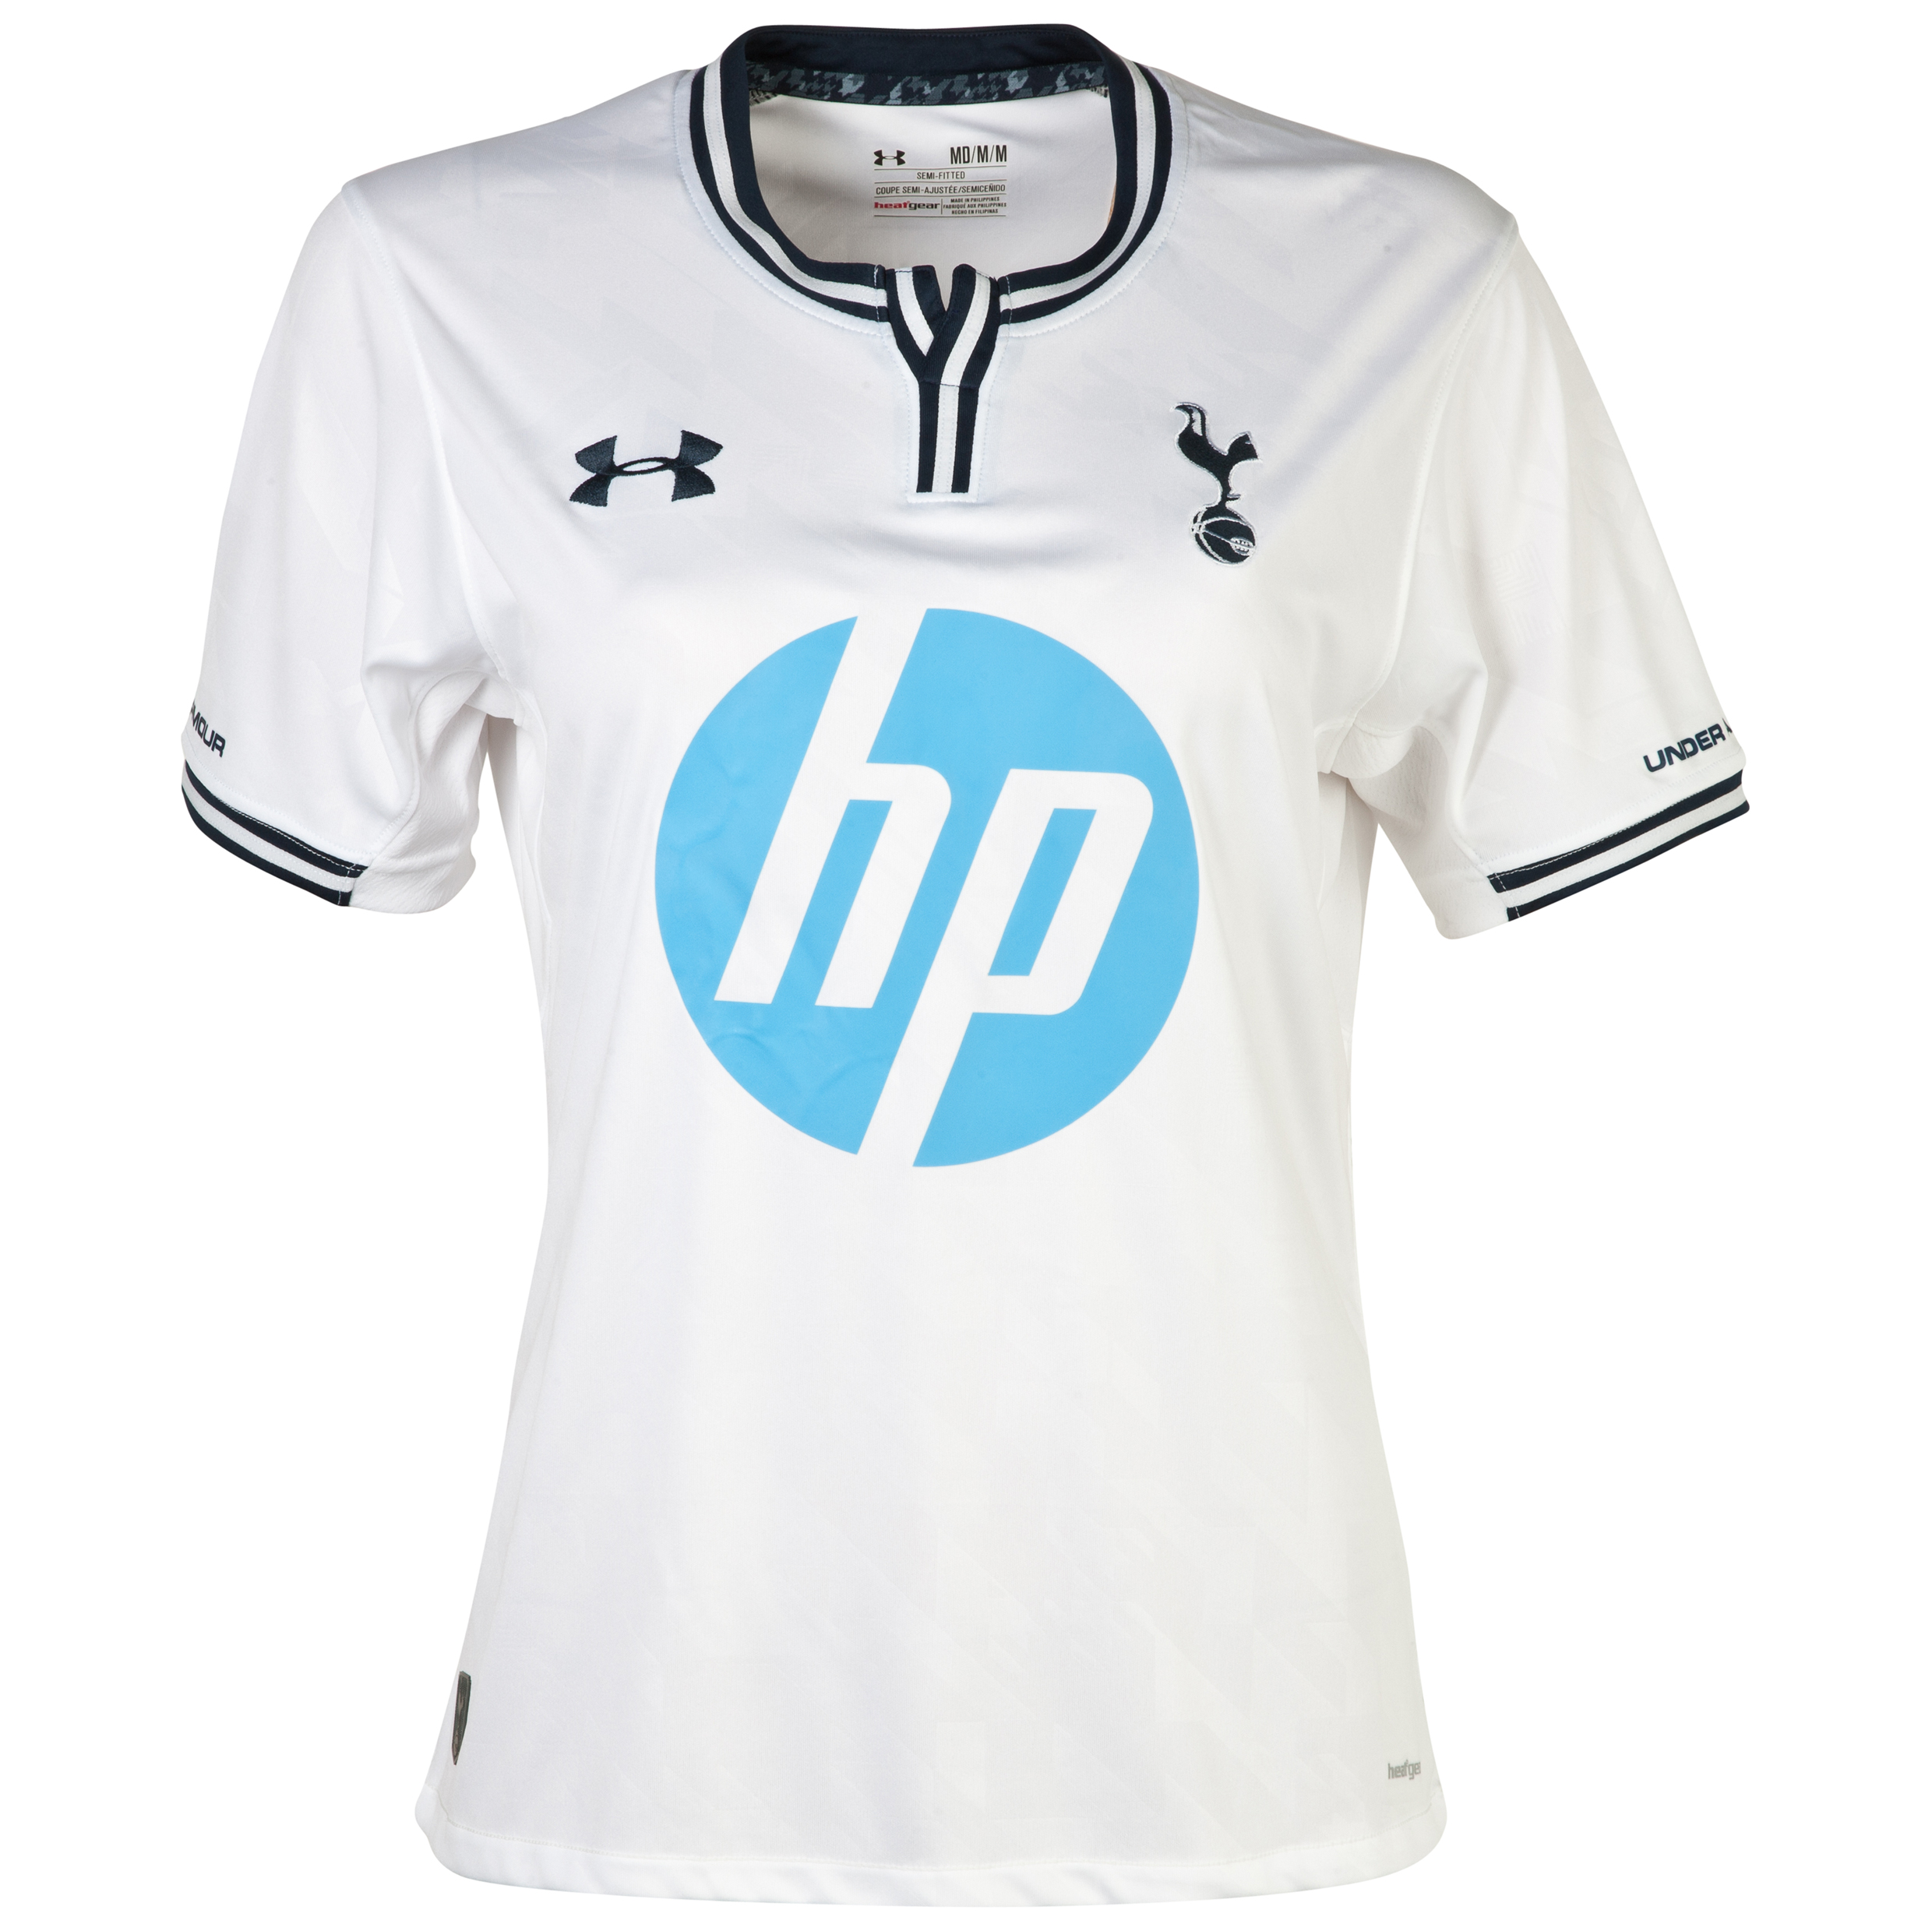 Buy Tottenham Hotspur Home Kit 2013/14 Womens